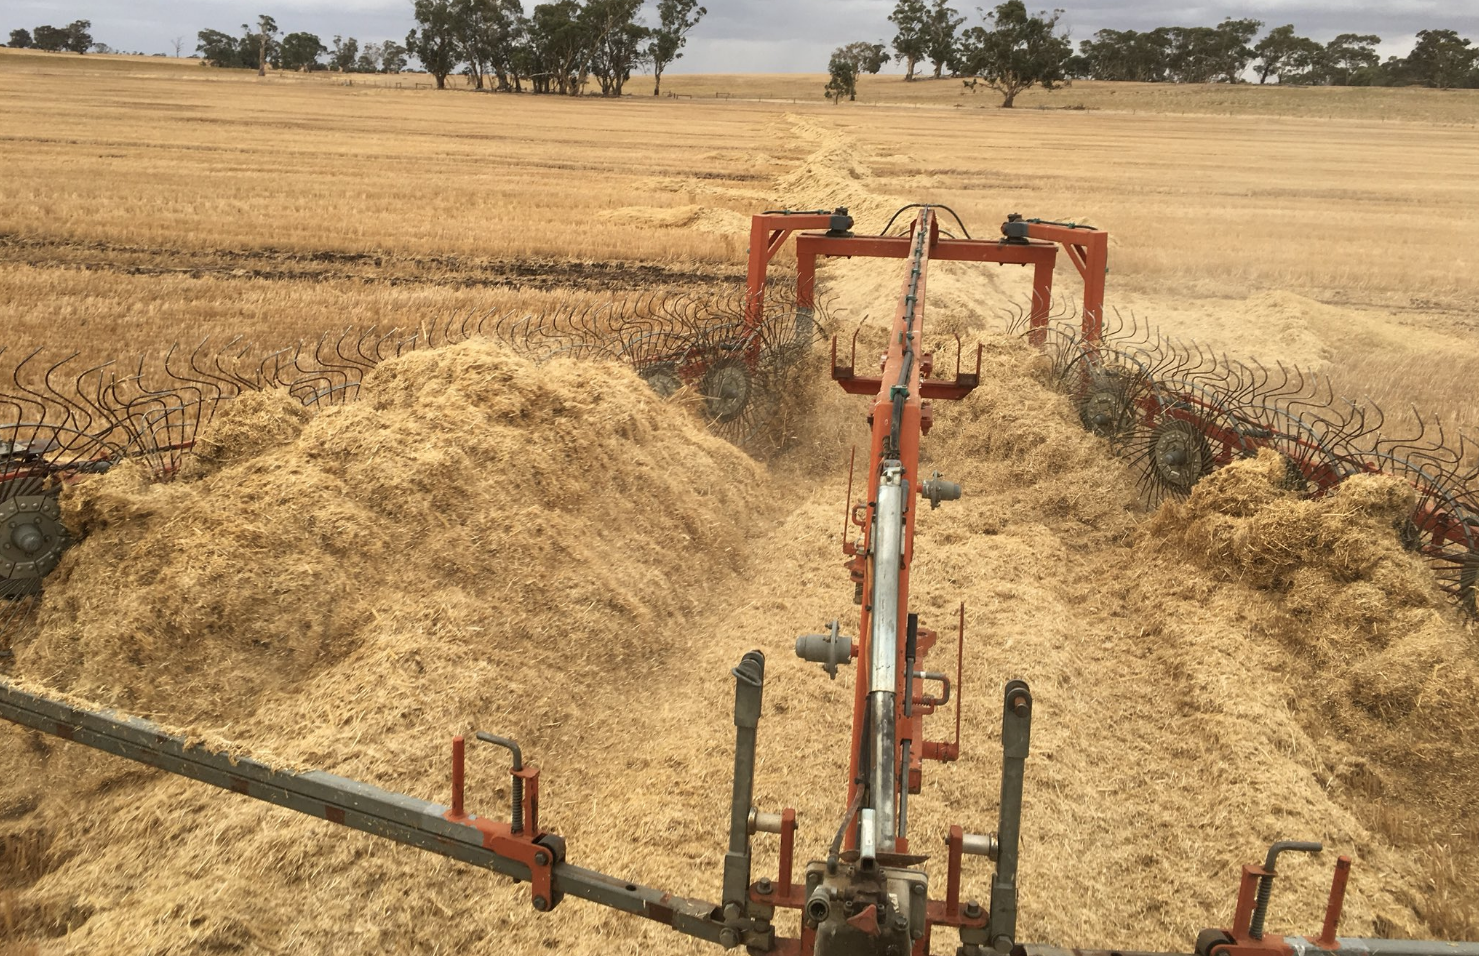 Chaff dump management and 'strip and disc' systems